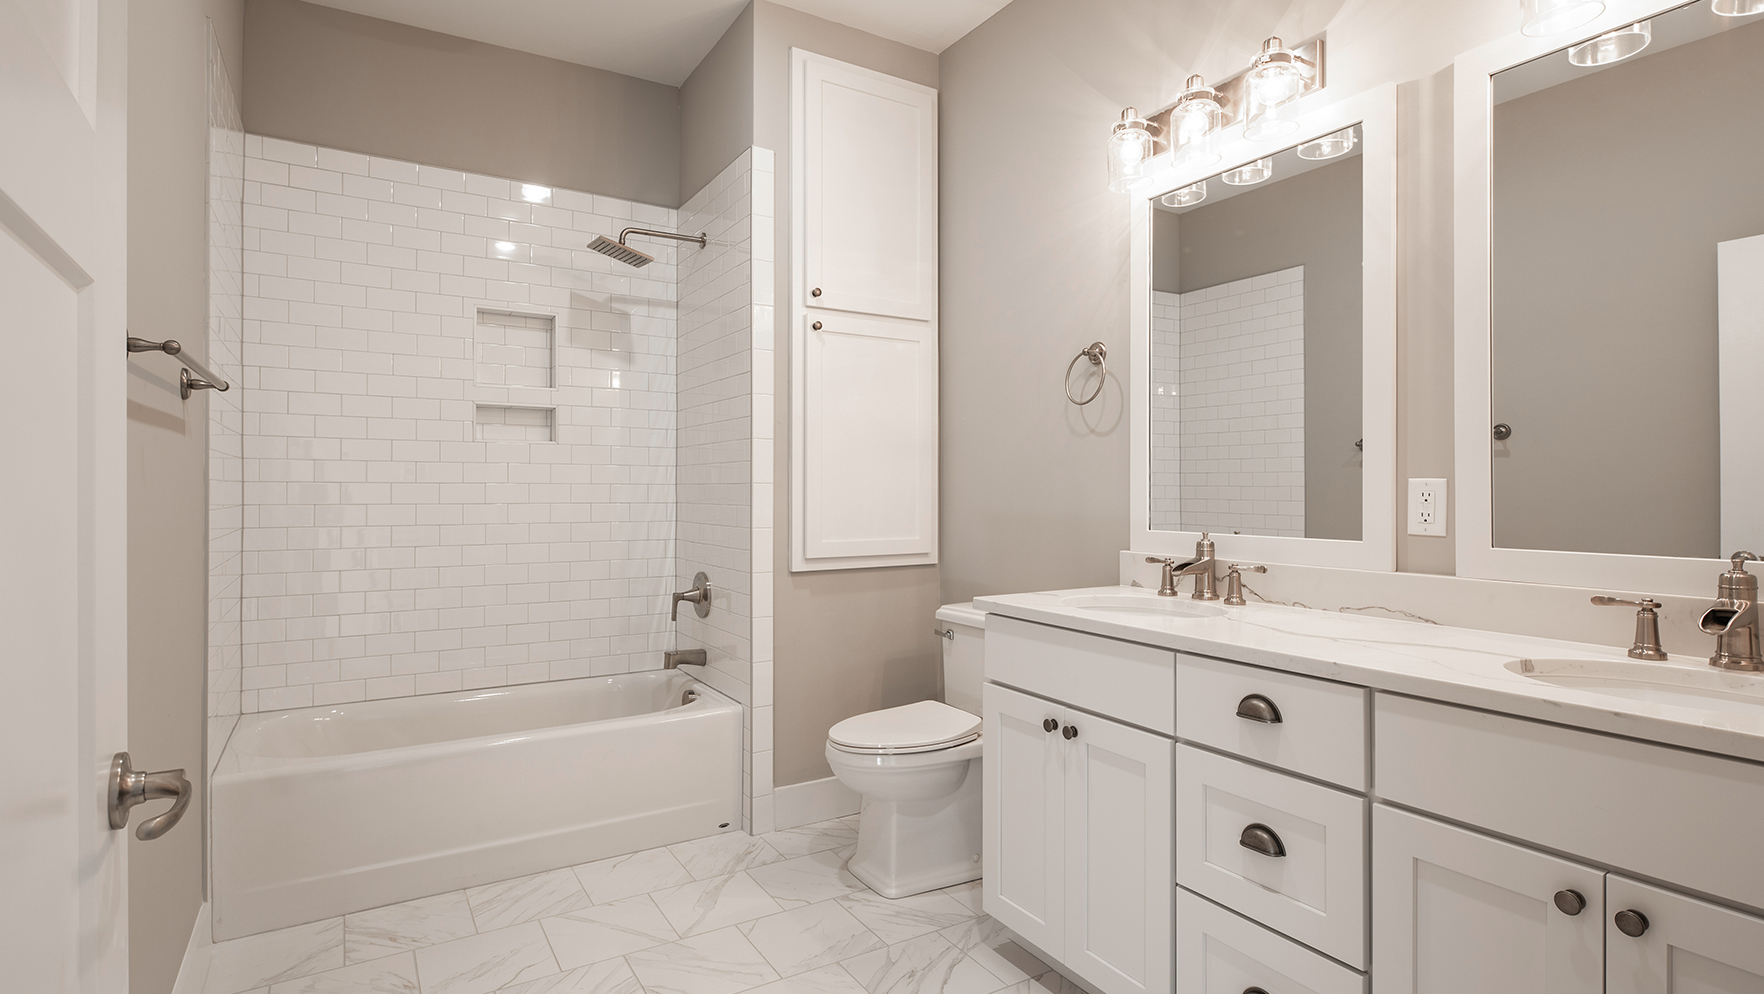 Give Bathrooms a Cosmetic Face-Lift